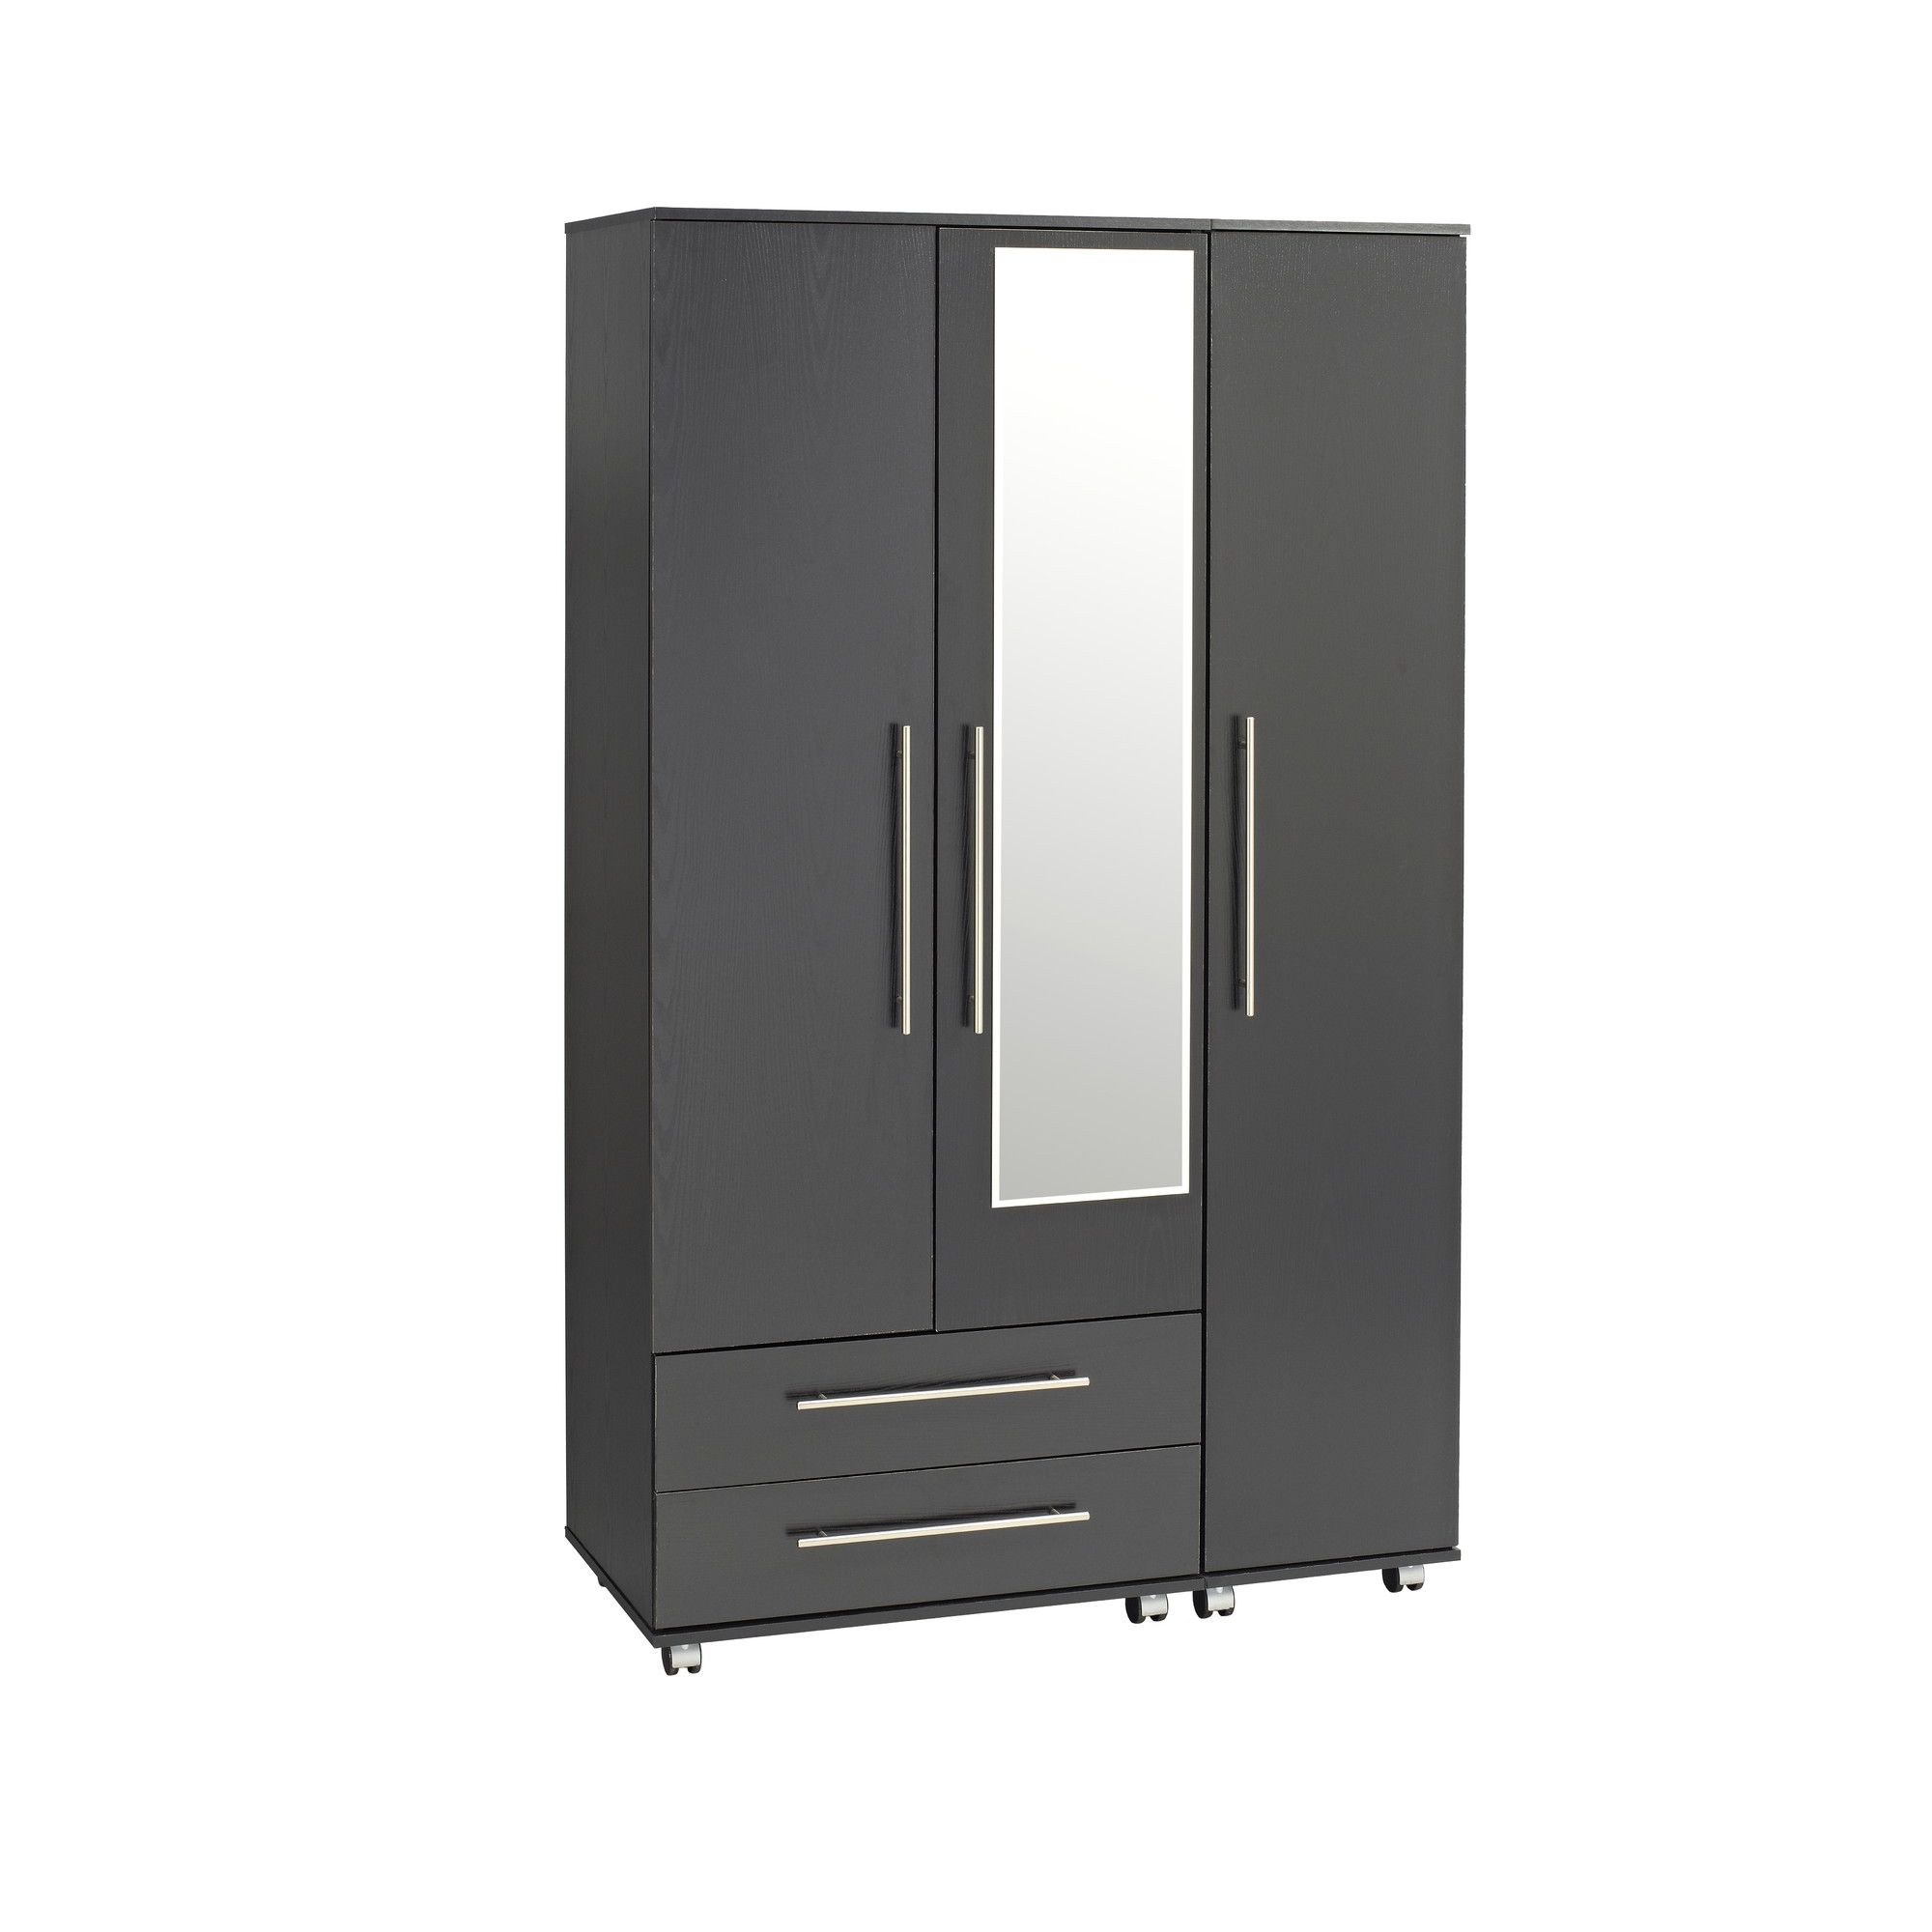 Ideal Furniture Bobby Triple Wardrobe with Two Drawer and Mirror - Black at Tesco Direct